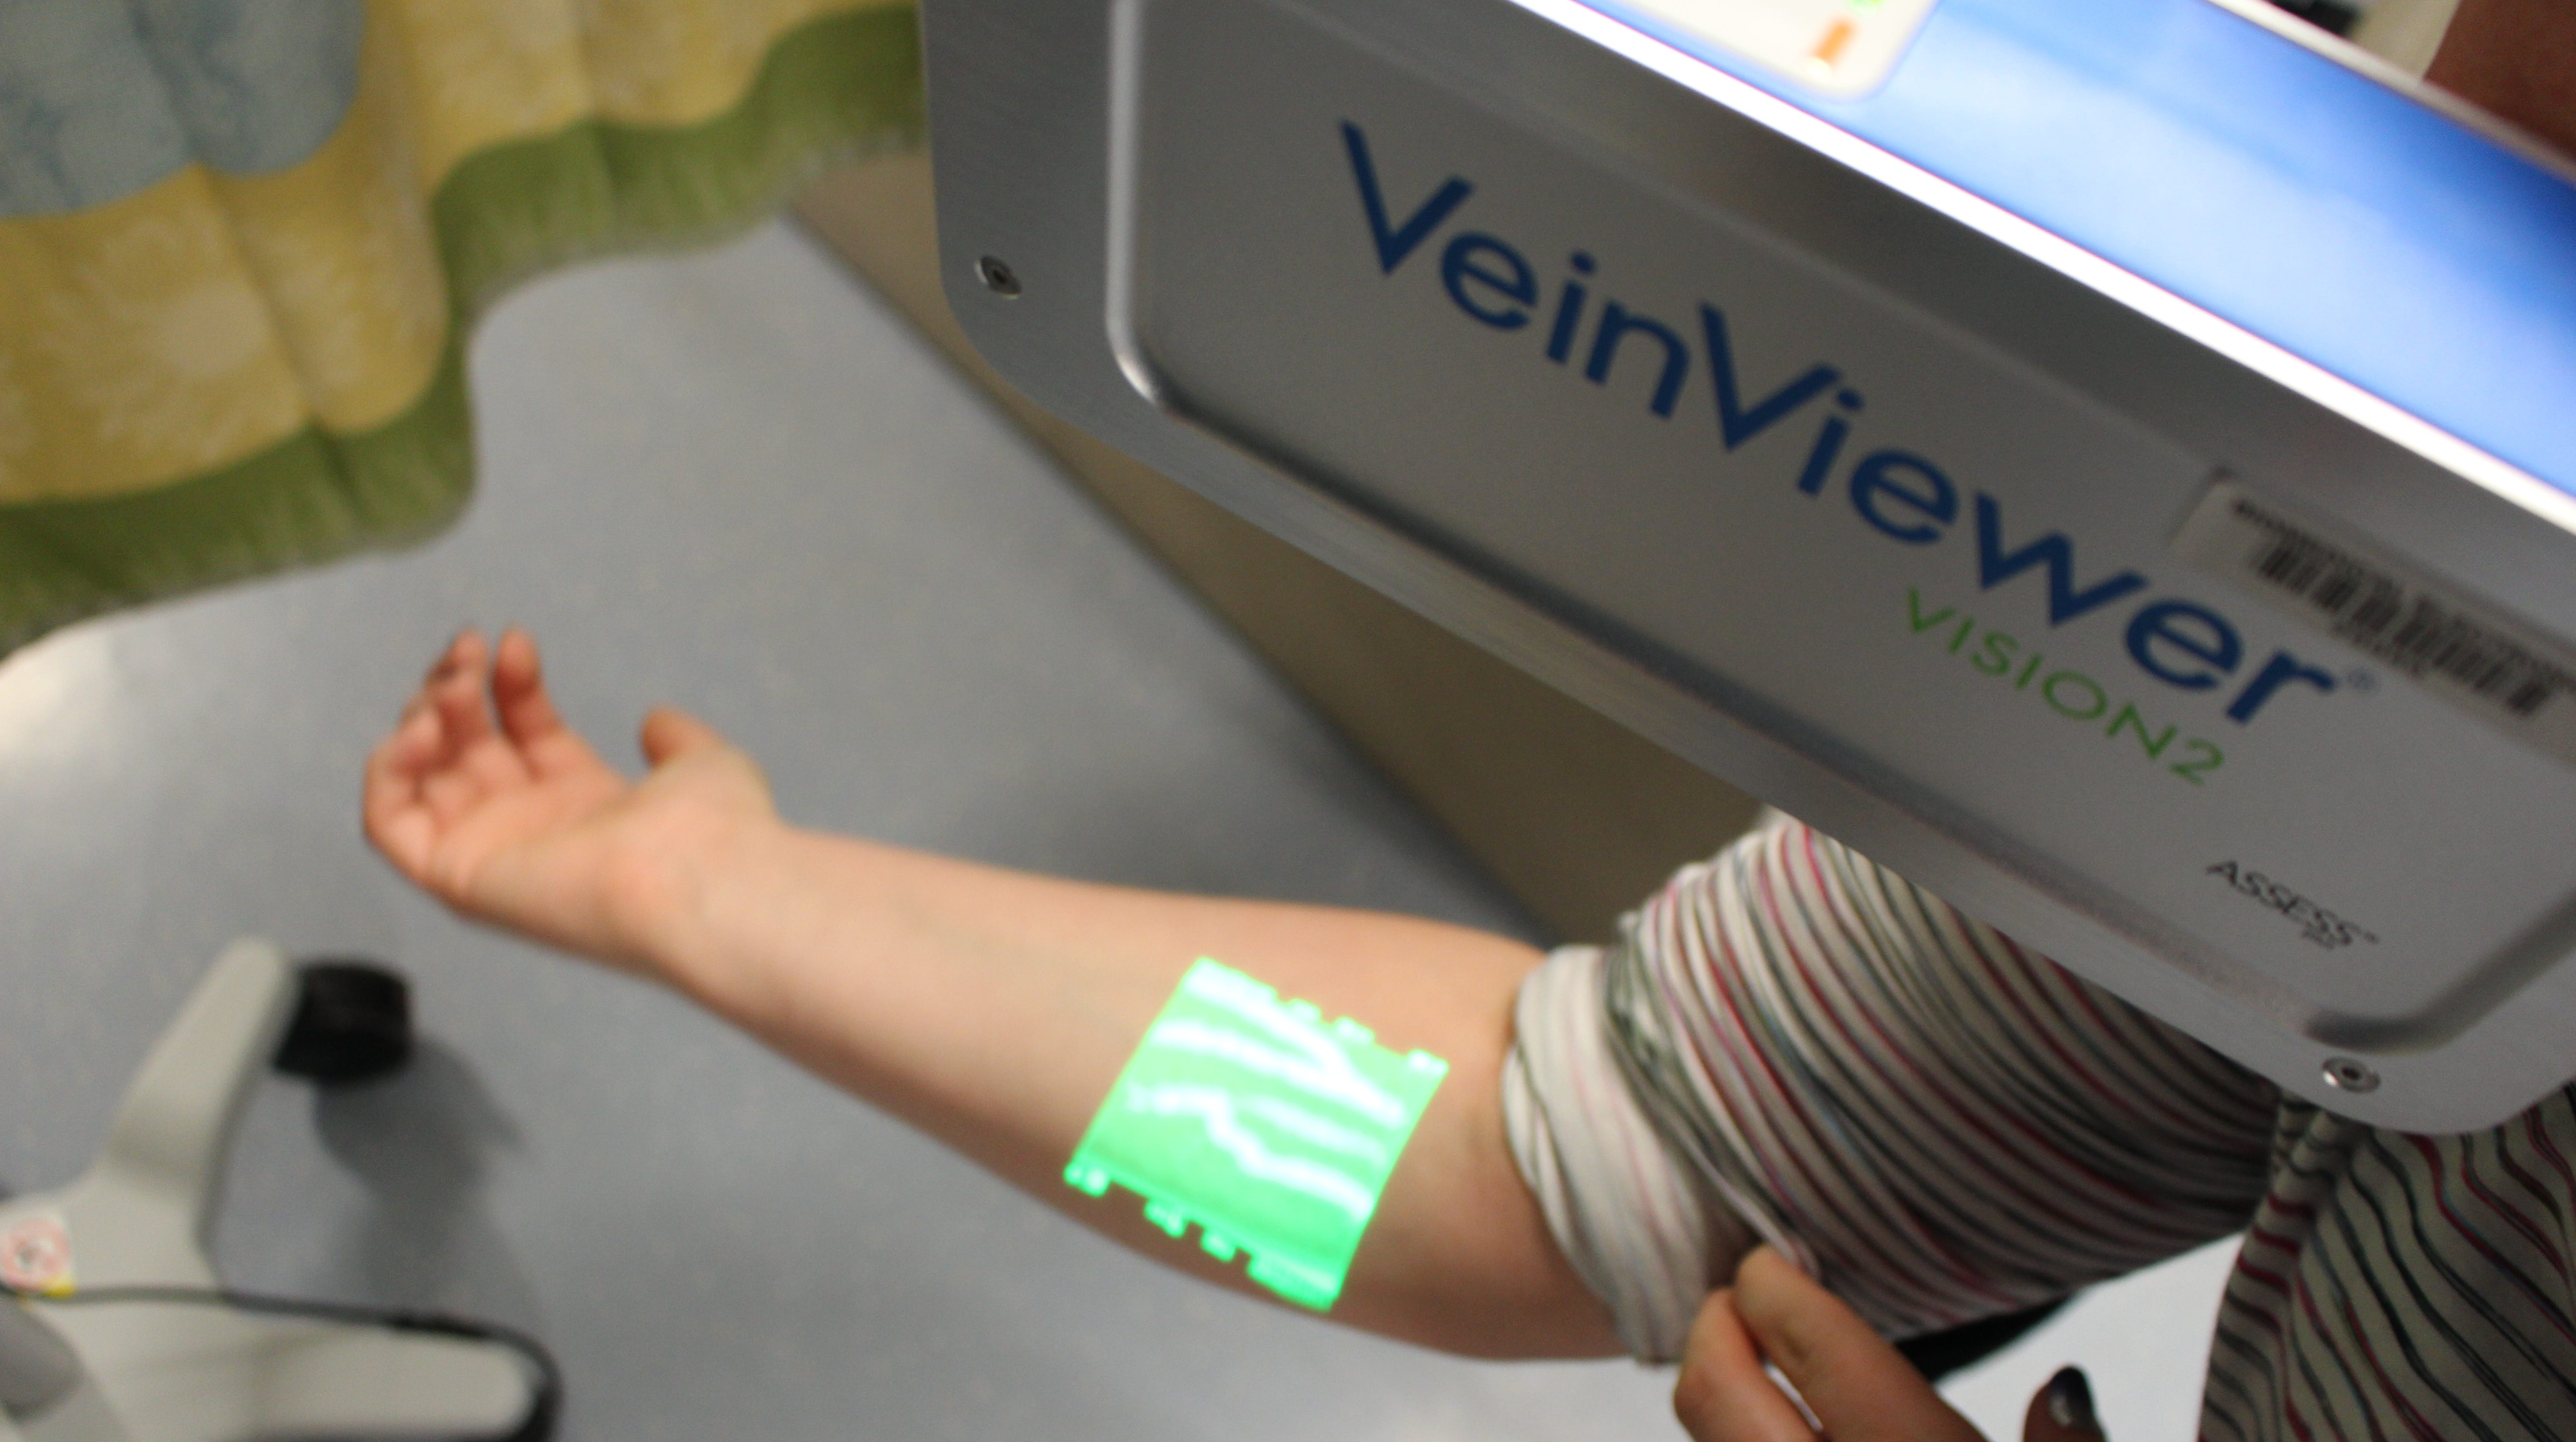 The VeinViewer works without ever having to touch your skin.